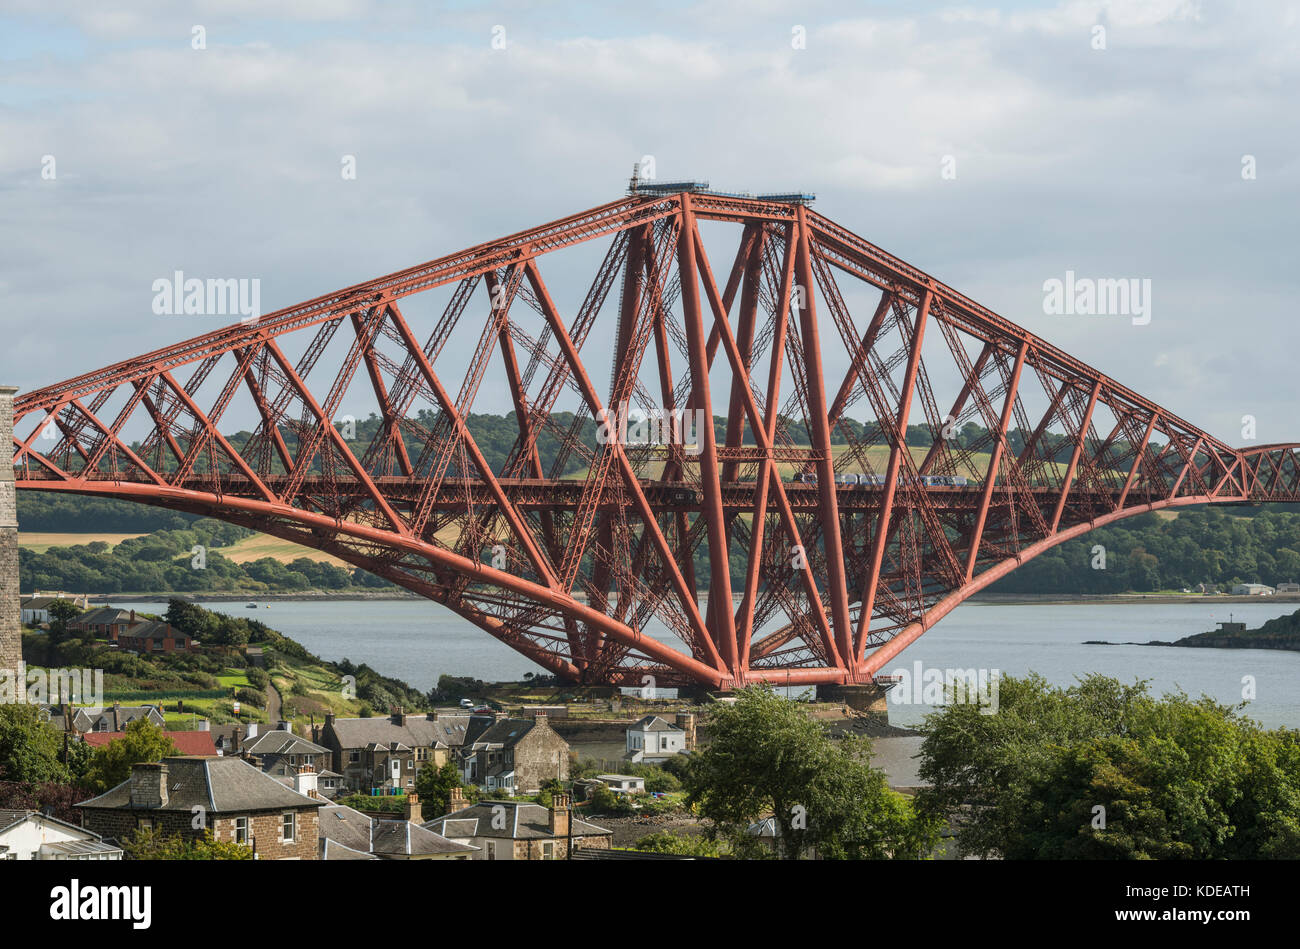 Forth Bridge by North Queensferry, Scotland,  UK - Stock Image